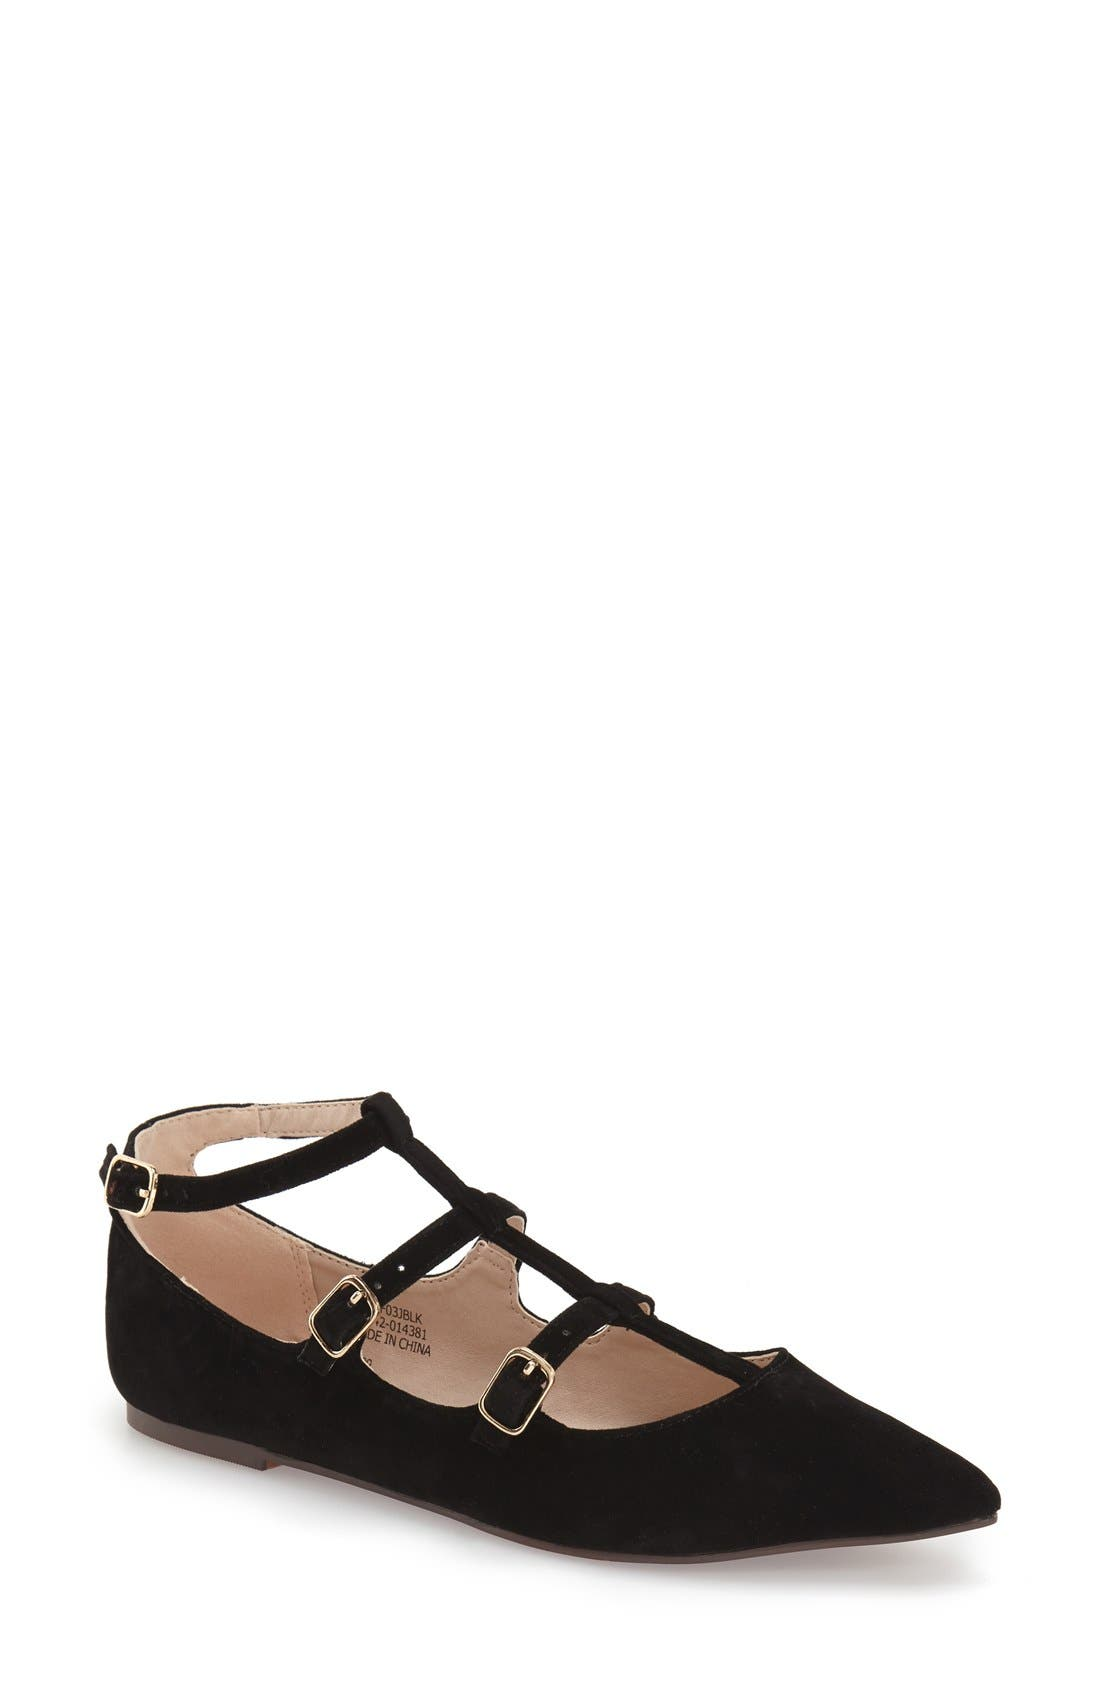 Alternate Image 1 Selected - Topshop 'Freya' Strappy Pointy Toe Flat (Women)